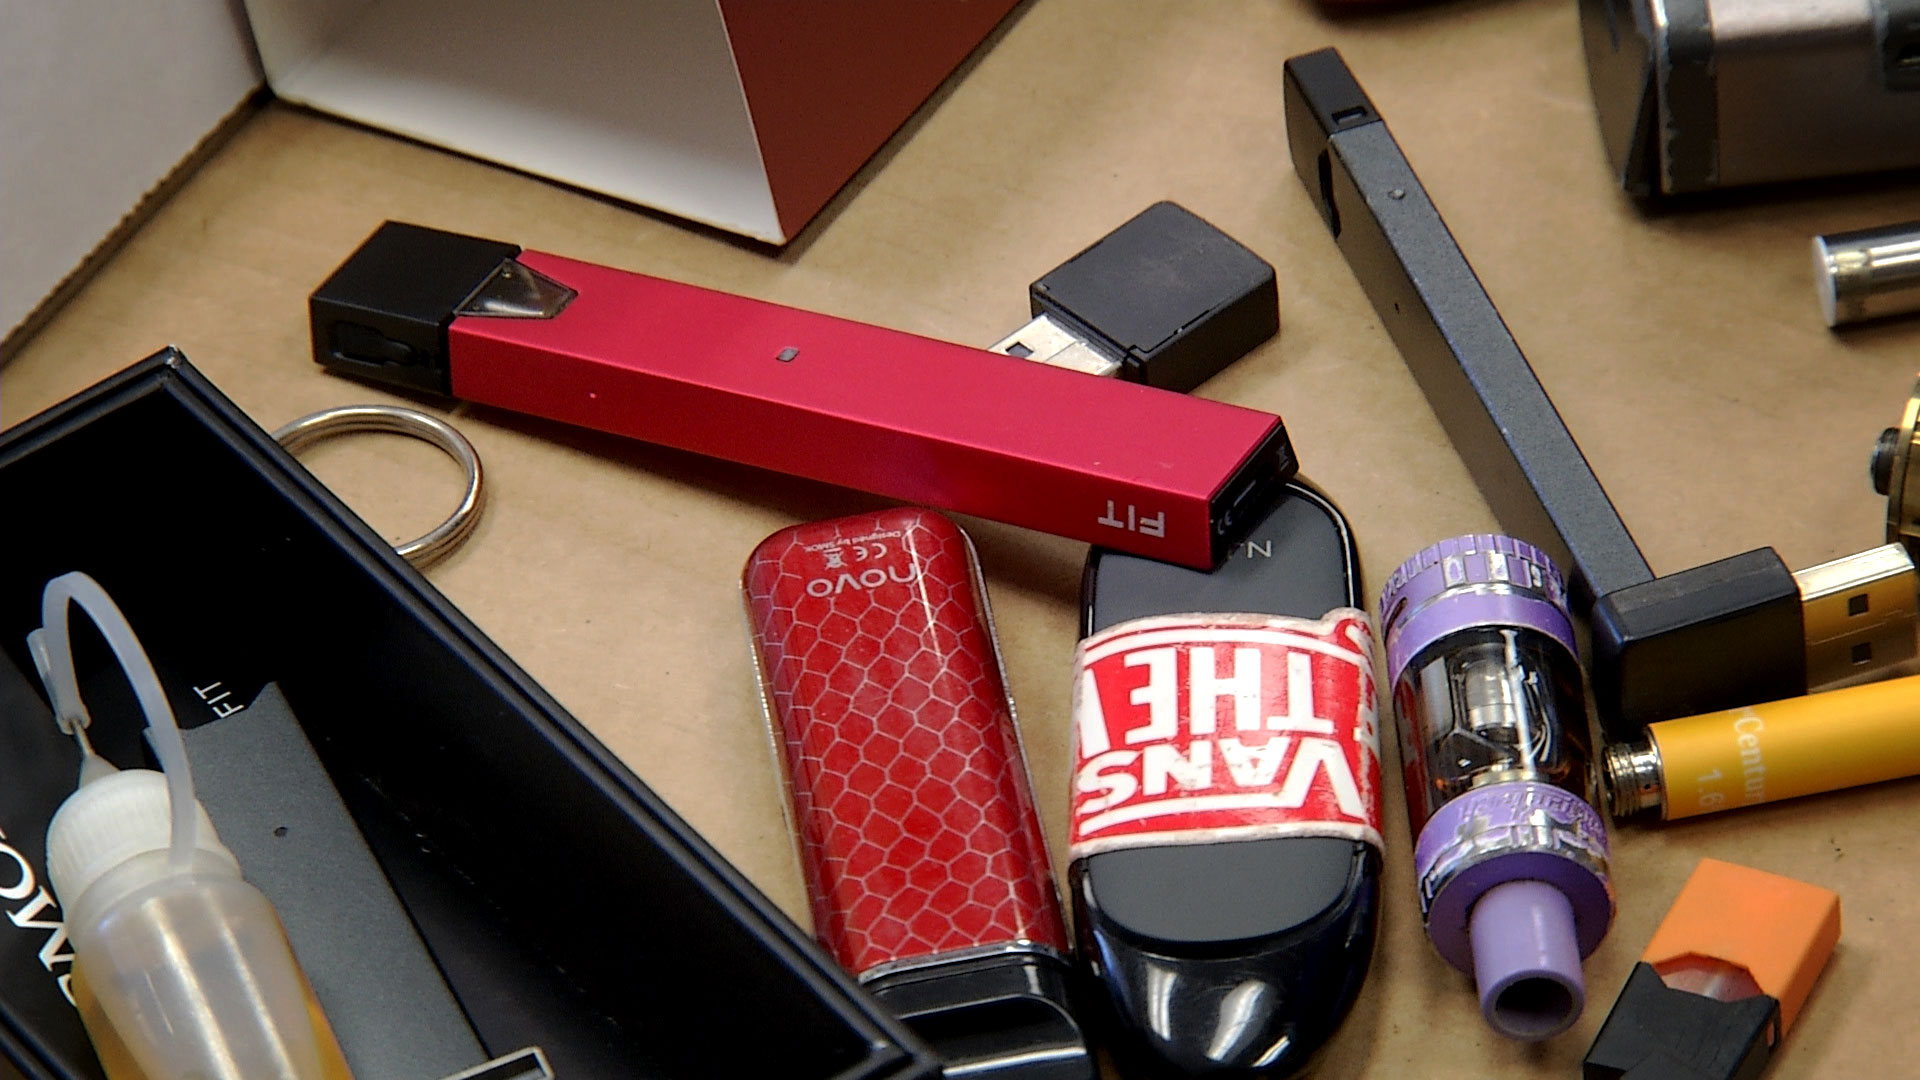 Vaping devices and materials confiscated from students at Marana High School.